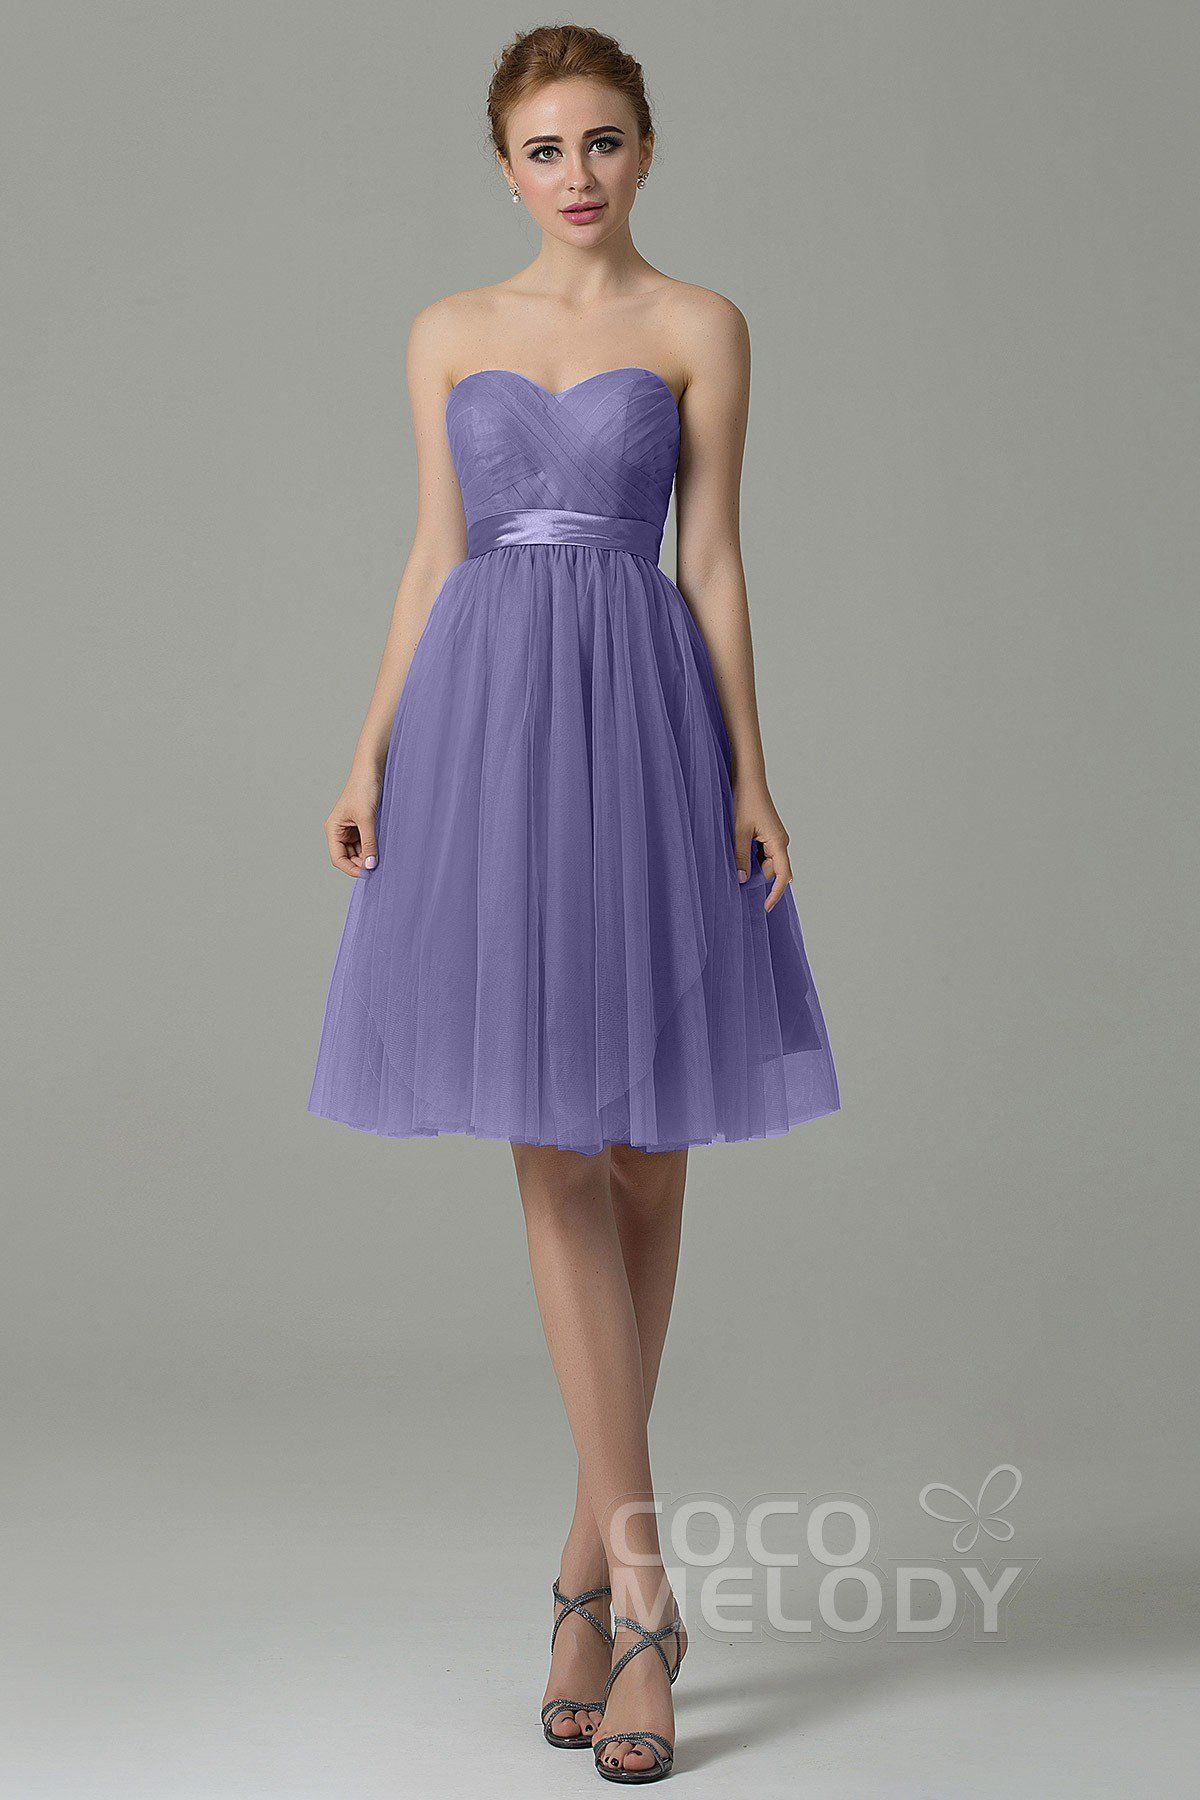 296ddfe1b0cb Chic Sweetheart Natural Knee Length Tulle Sleeveless Zipper Convertible  Bridesmaid Dress with Sashes COZM15016 #bridesmaids #bridesmaiddresses  #cocomelody ...